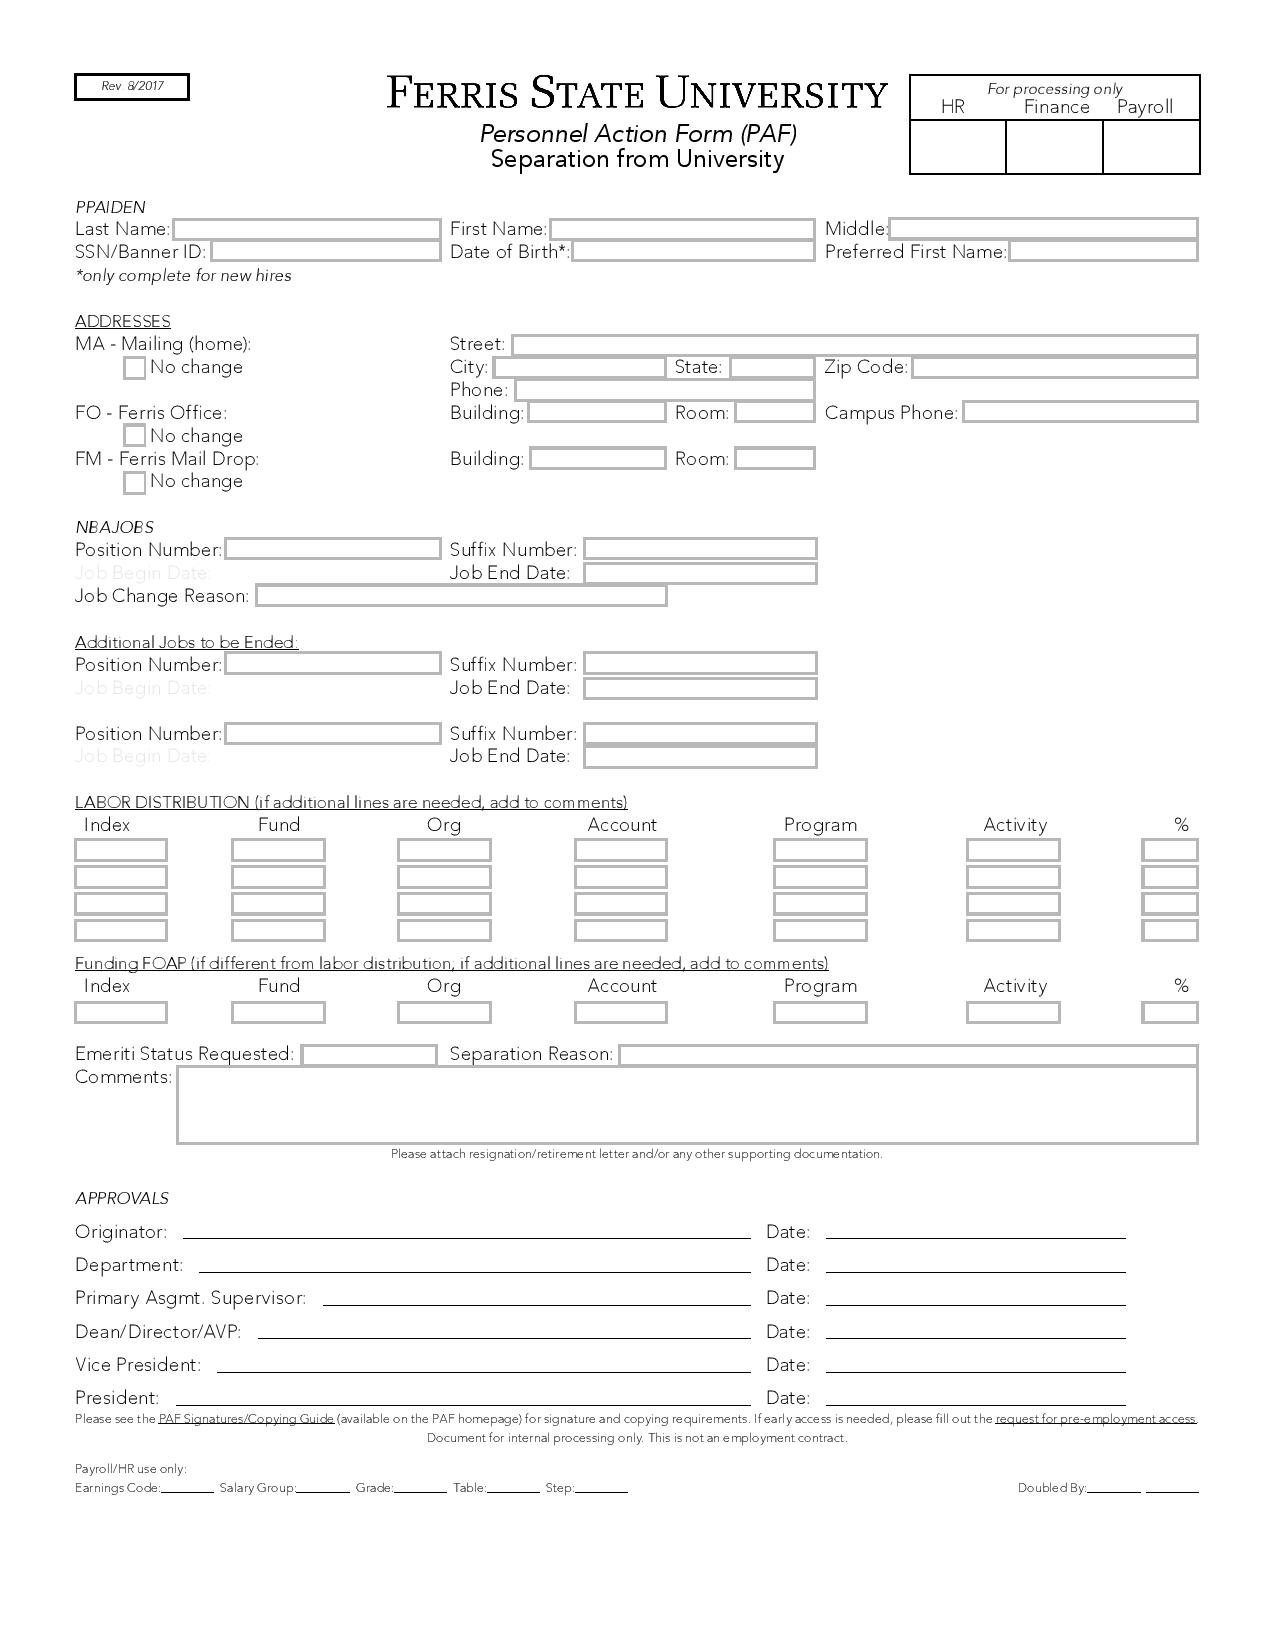 personnel action form separation page 001